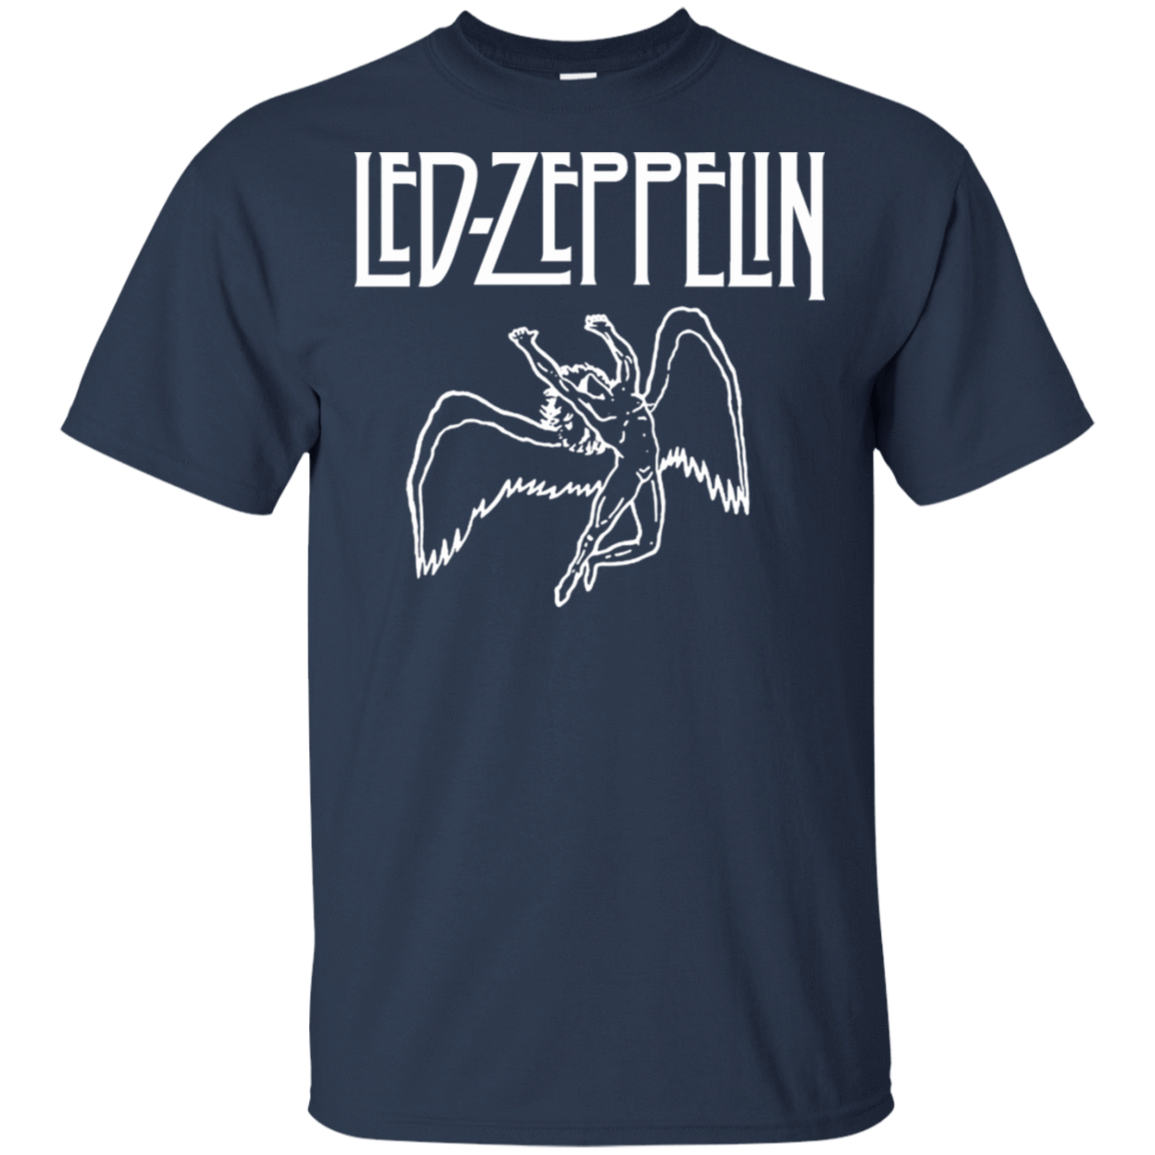 Led Zeppelin 22-111-72742971-250 - Tee Ript